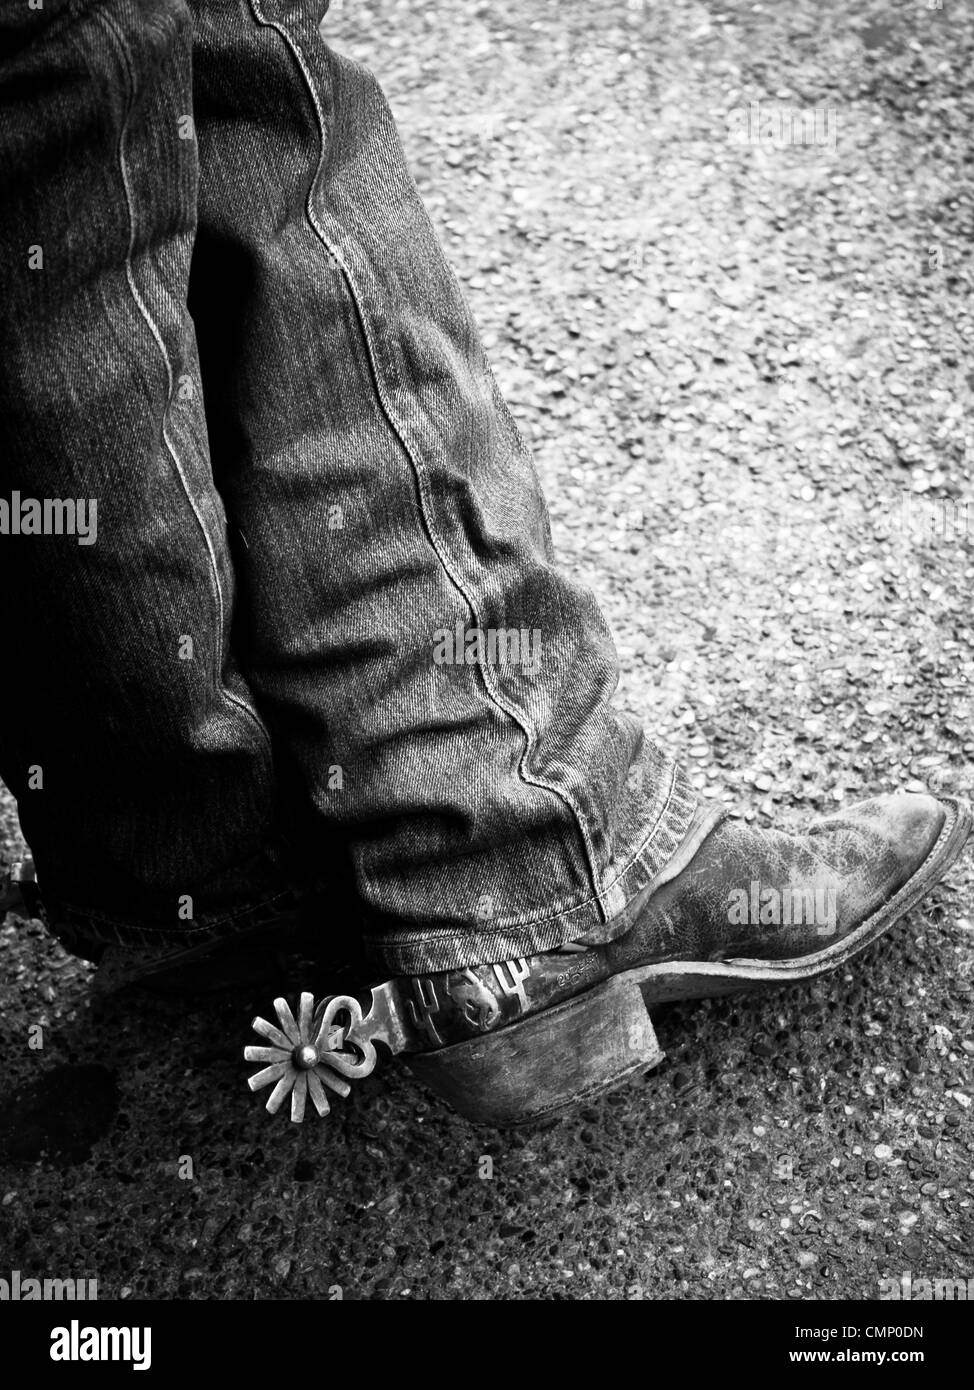 Close-up detail of cowboy boots and spurs. - Stock Image